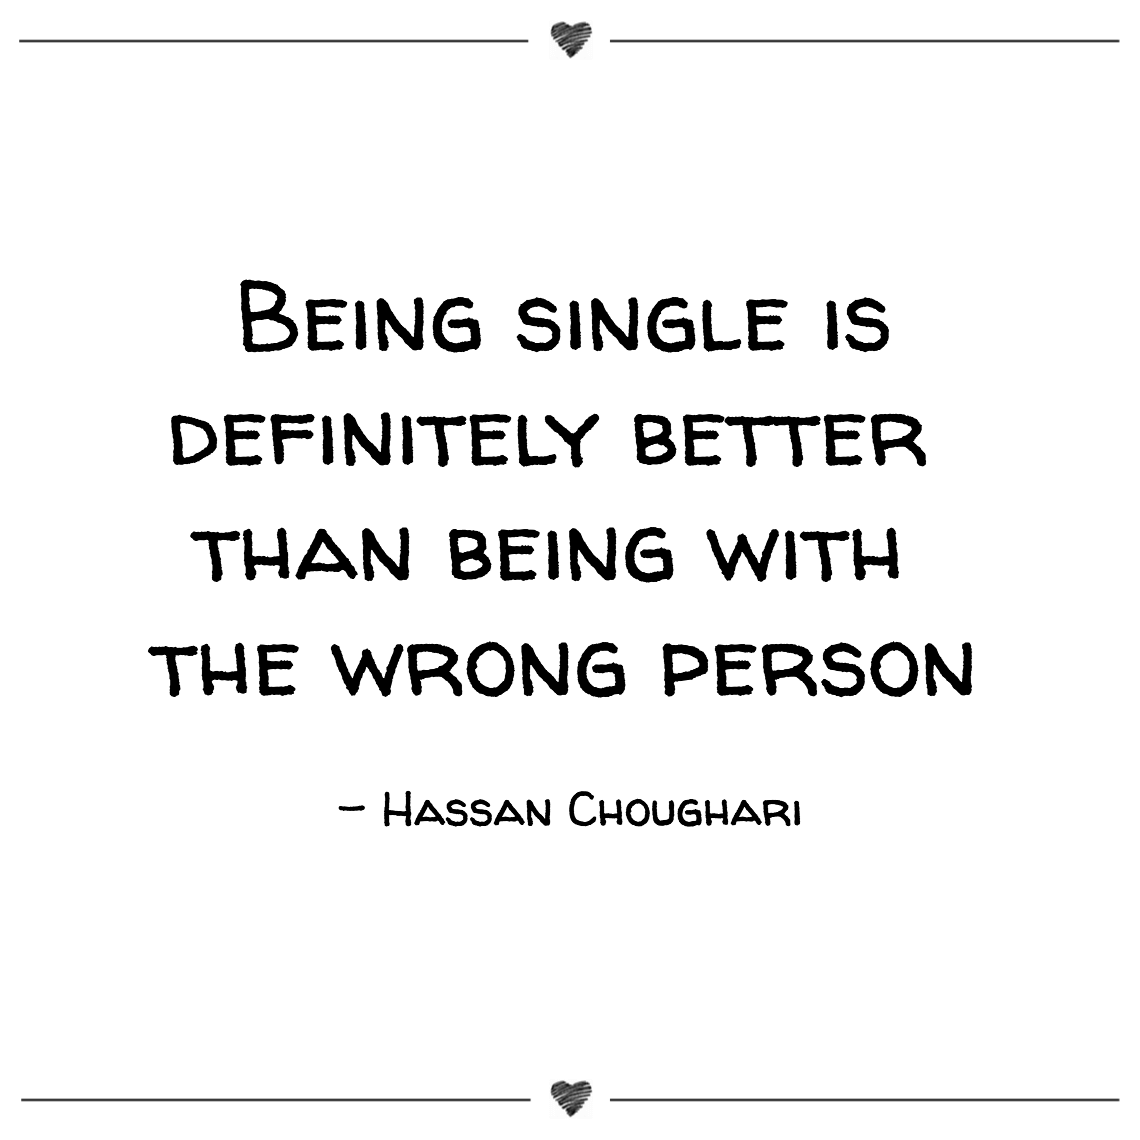 Being single is definitely better than being with the wrong person hassan choughari (1)